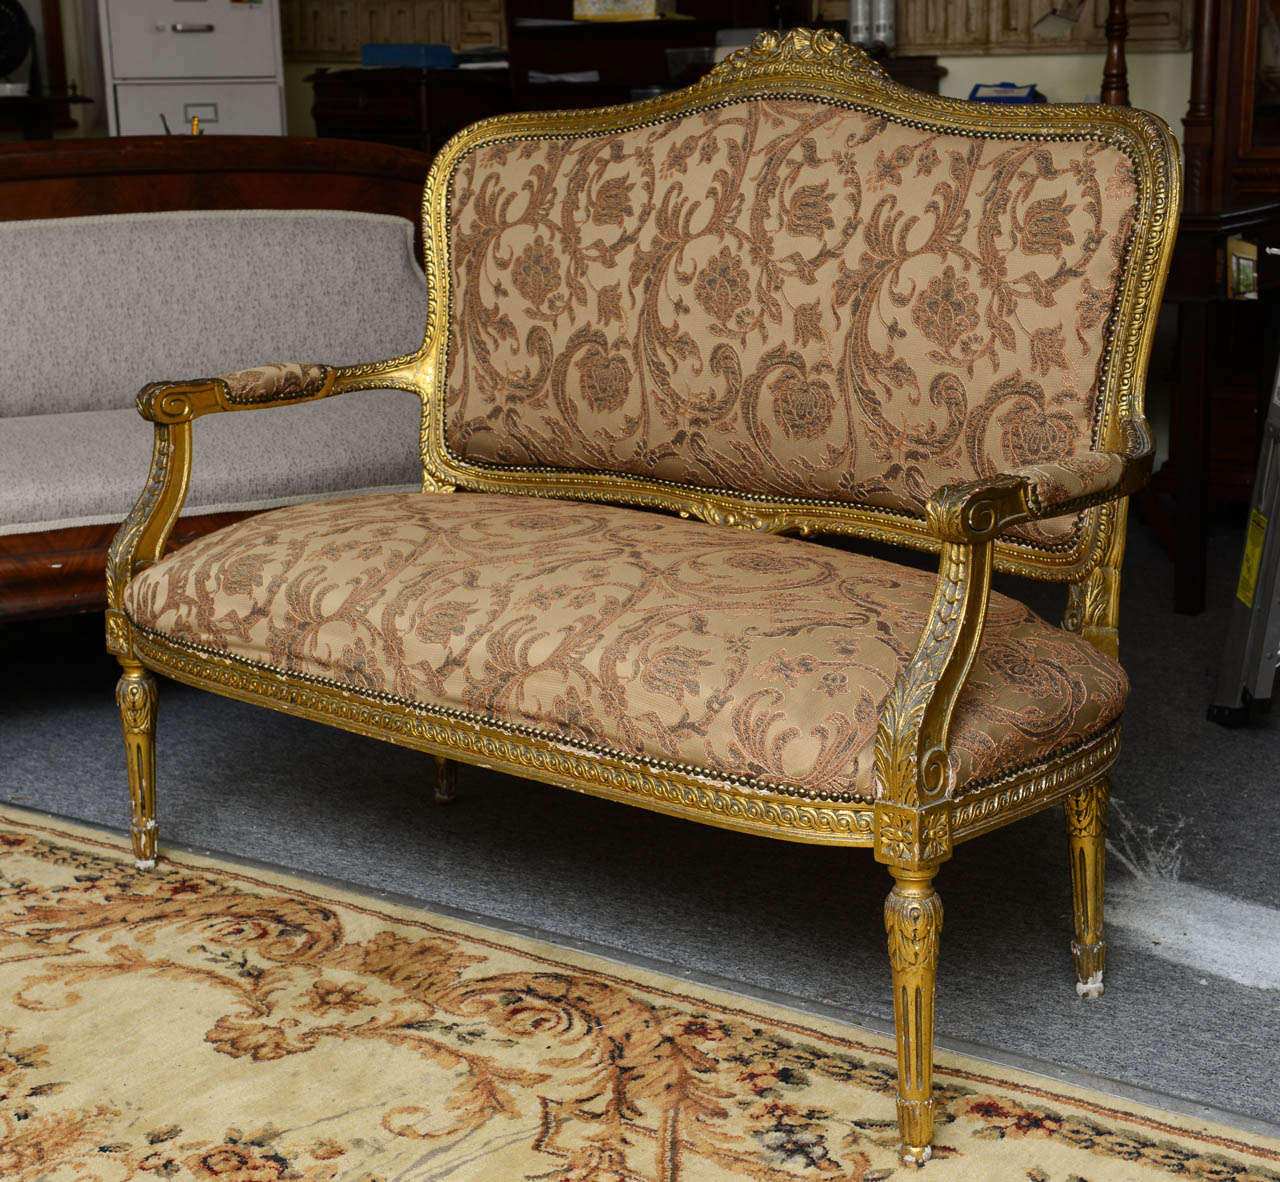 2 seater love chair best ergonomic desk superb french gilt two or seat with chairs